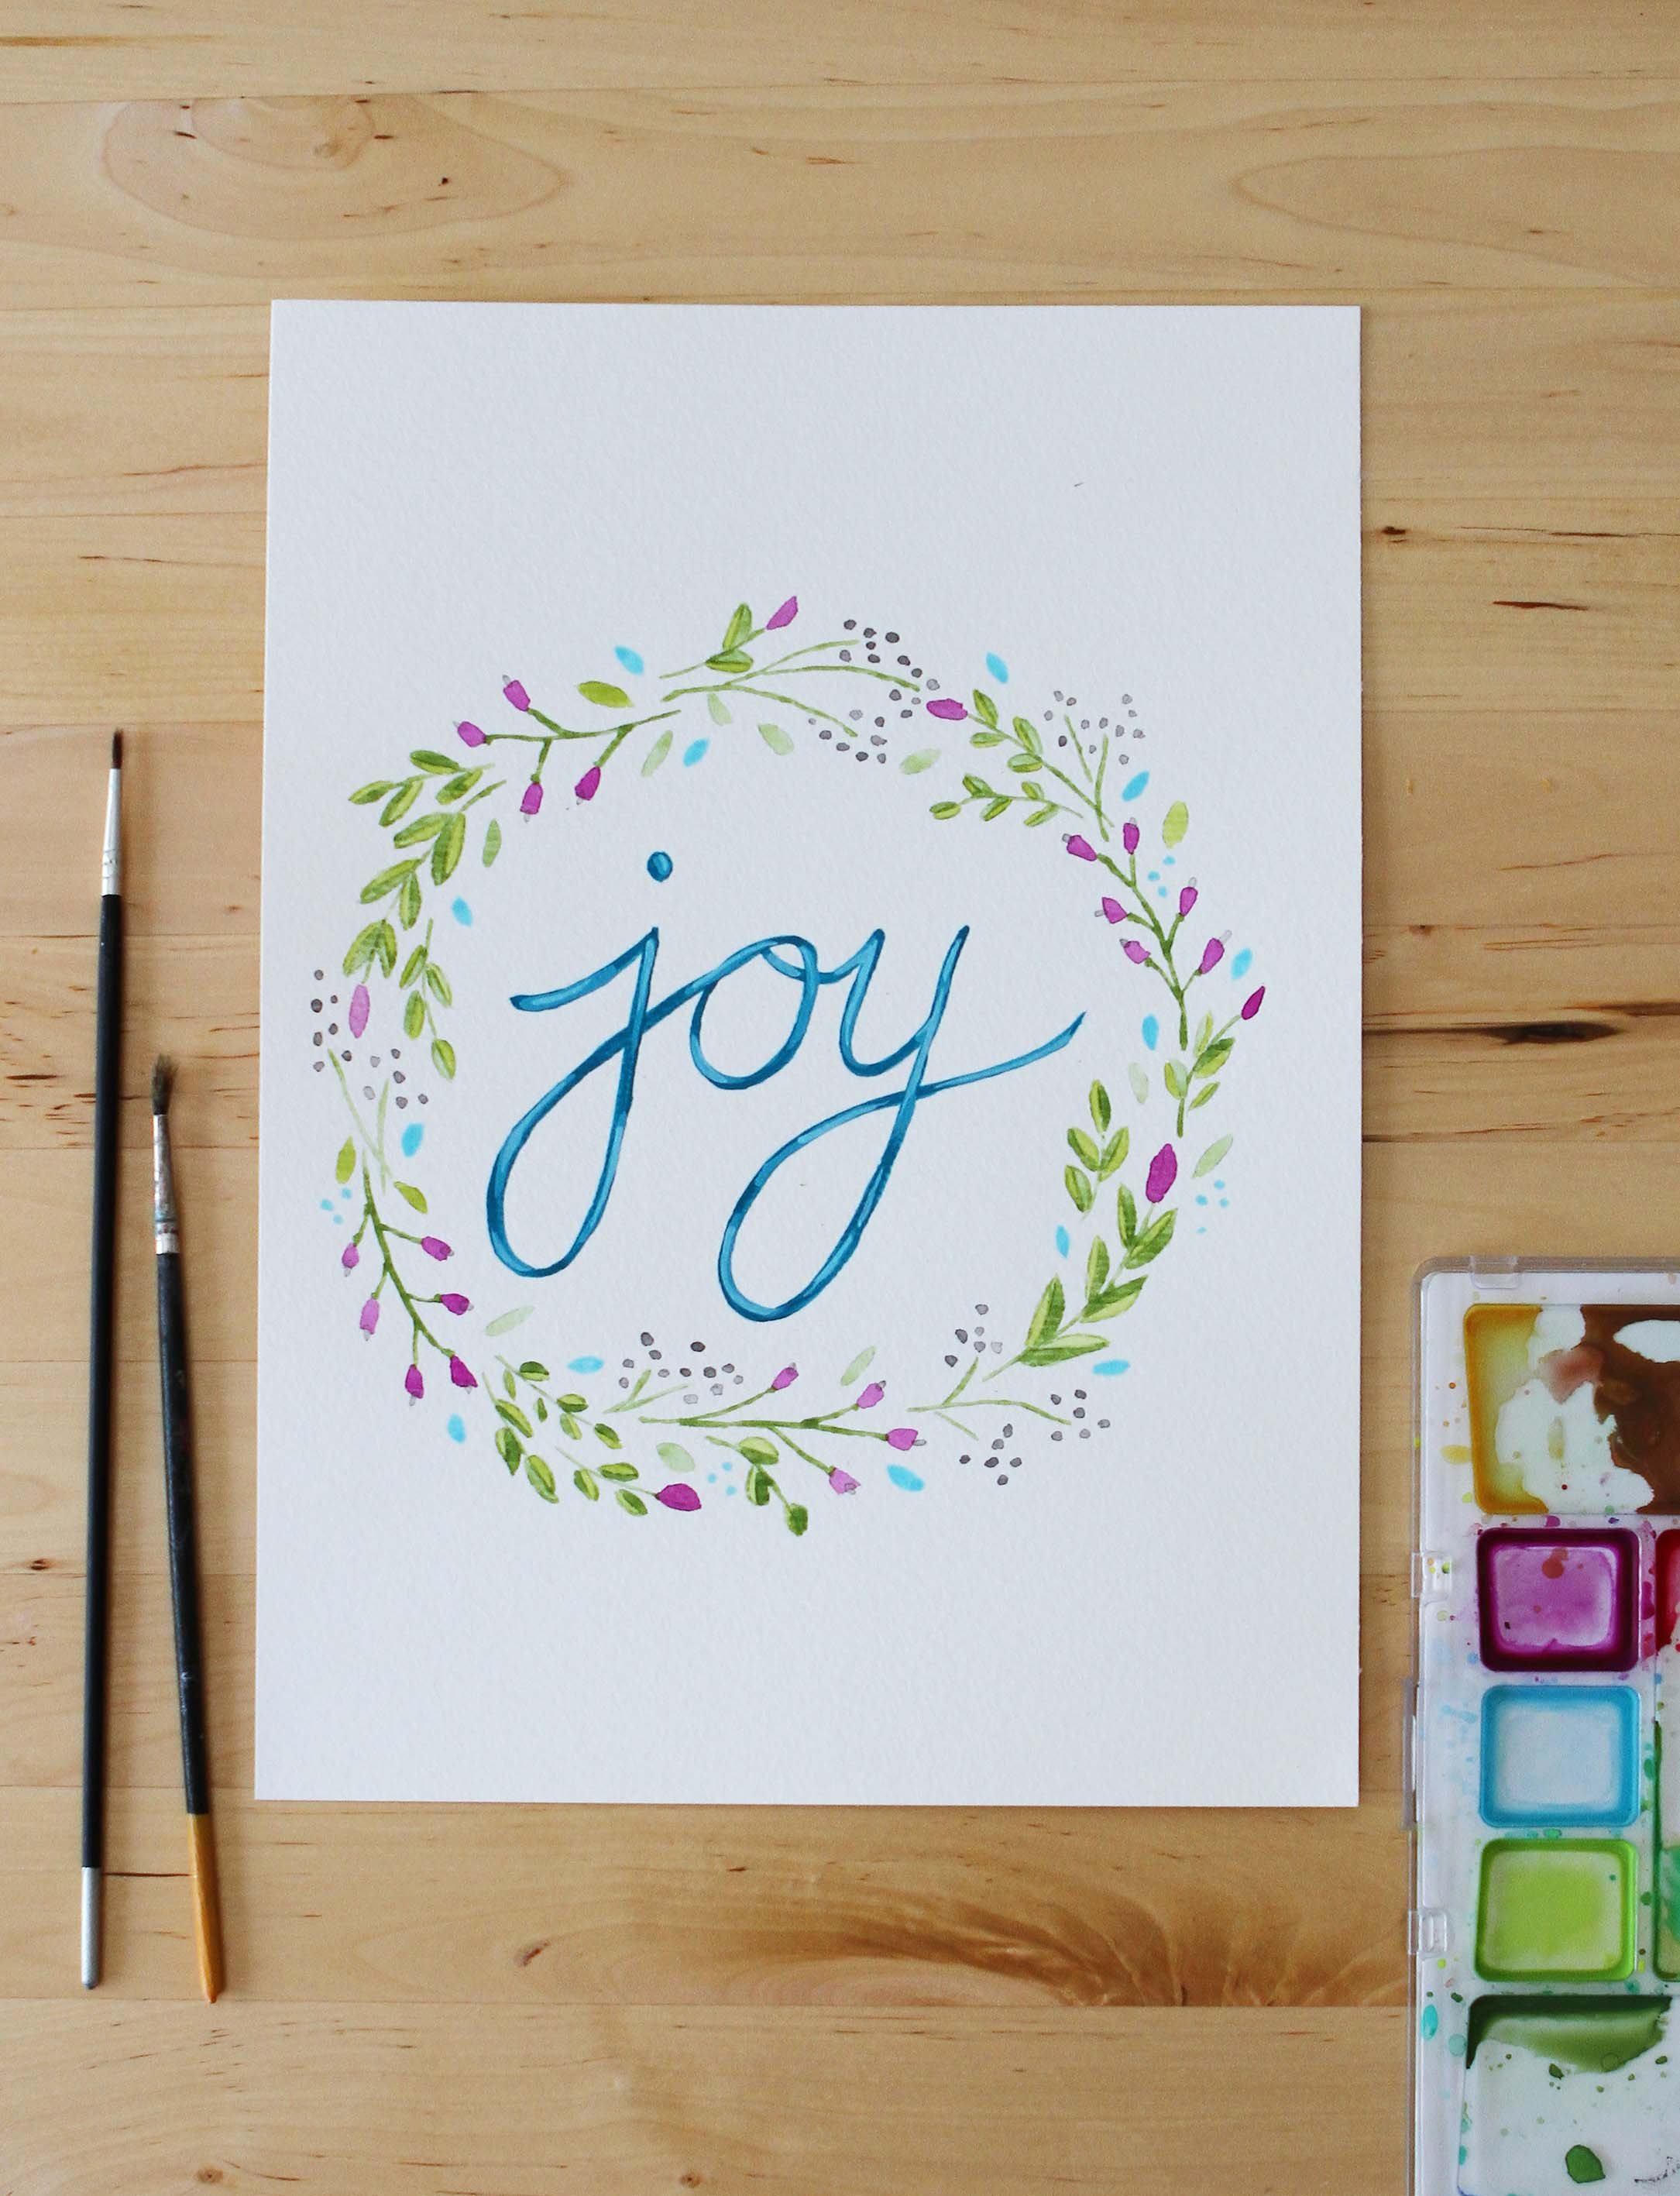 inspirational art gift home decor joy flowers floral wreath writing